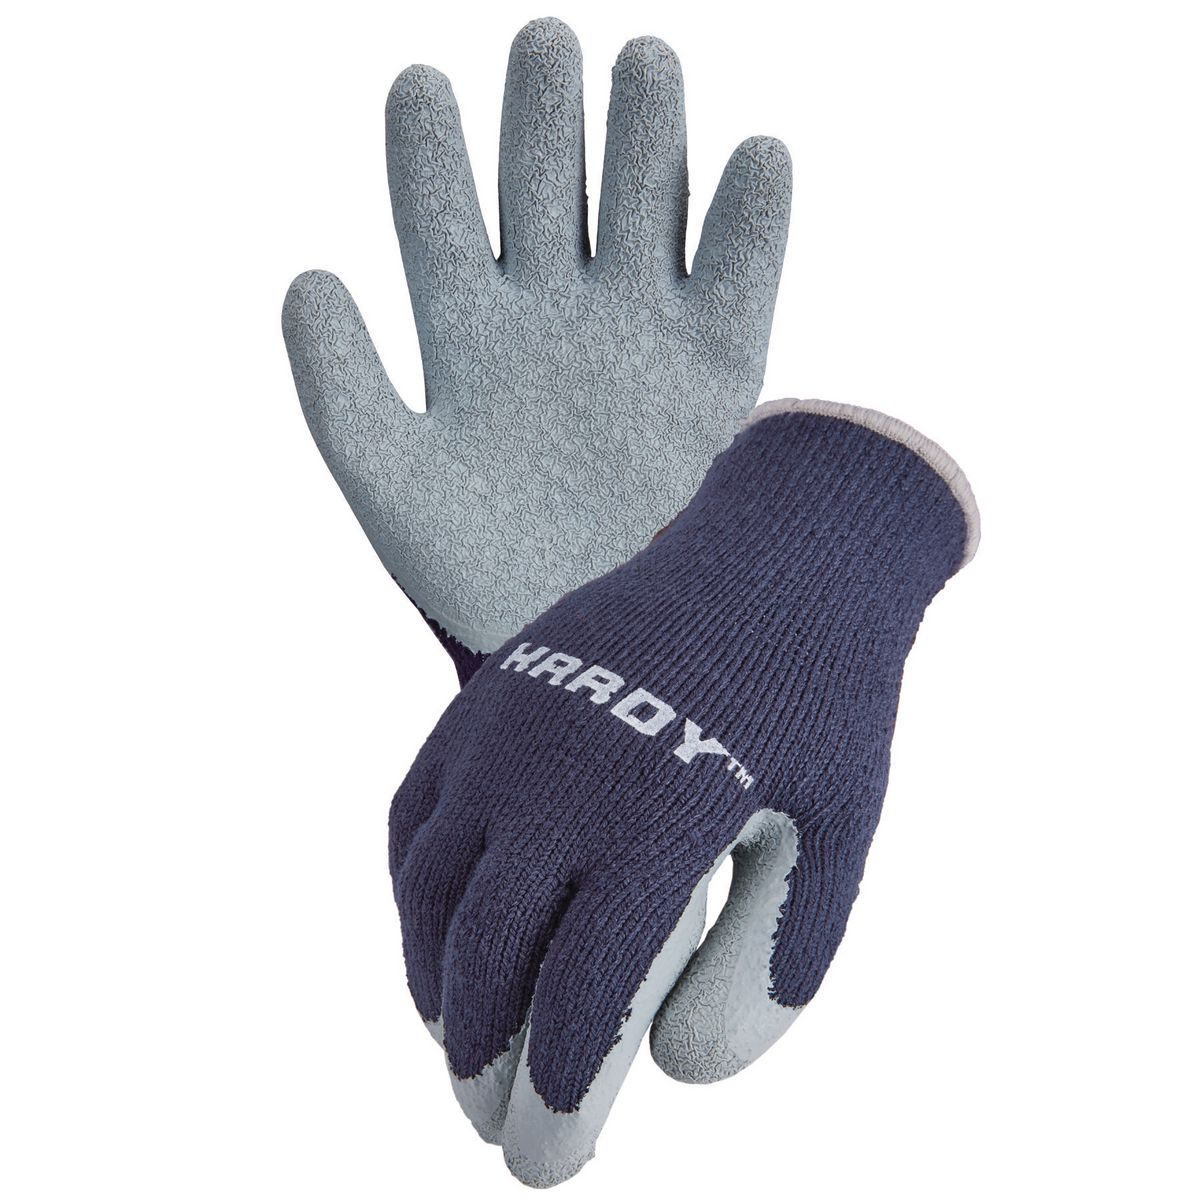 Thermal Knit Cold Weather Work Gloves XLarge